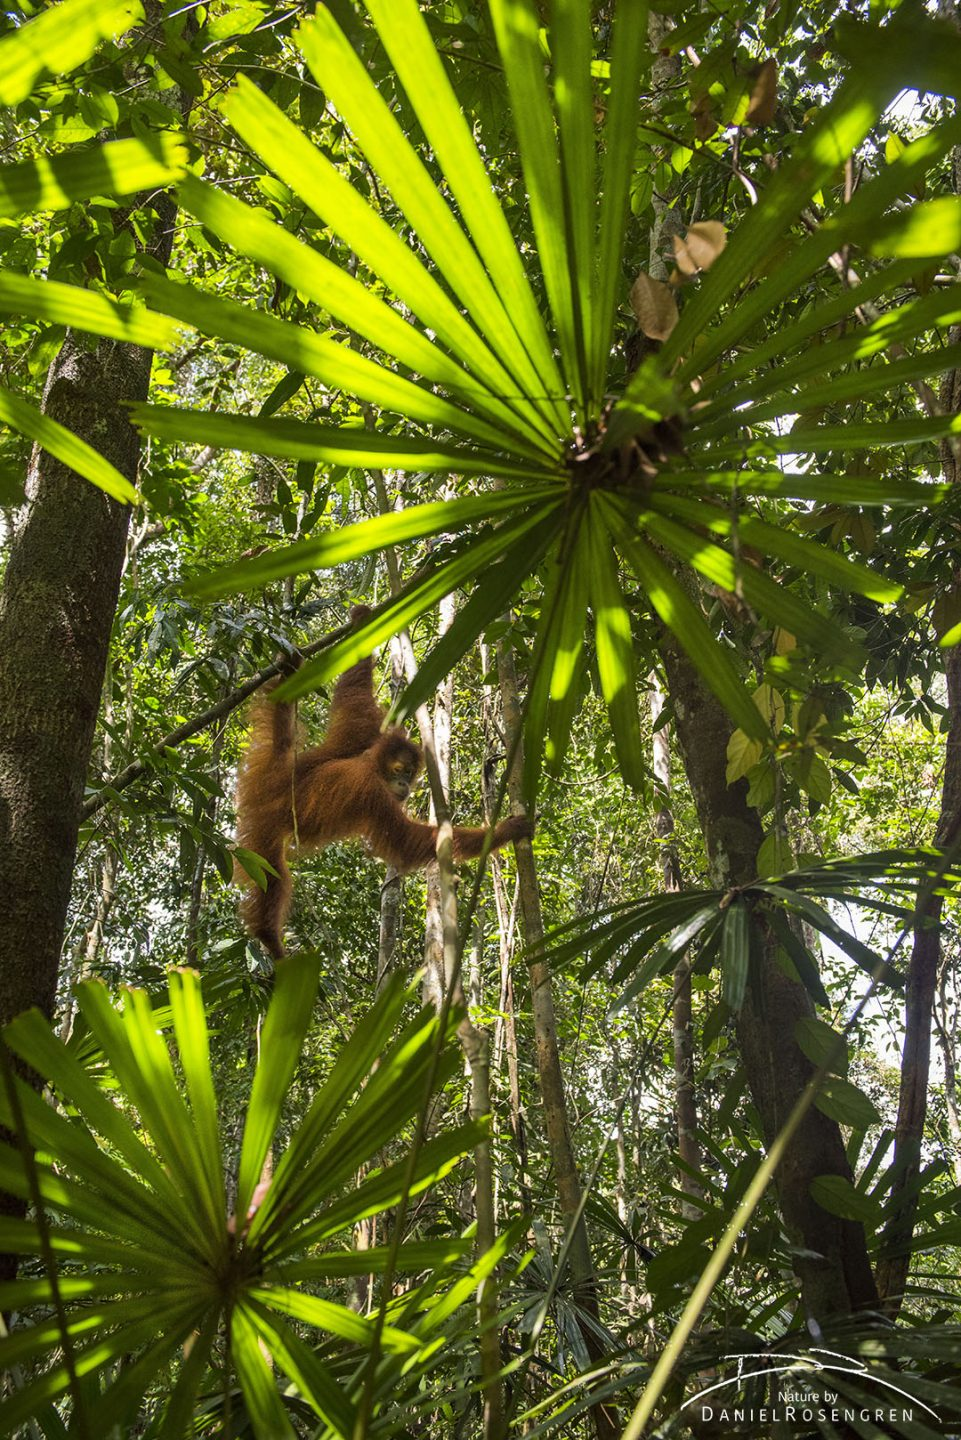 A young Orang-utan enjoying freedom in the jungle. © Daniel Rosengren